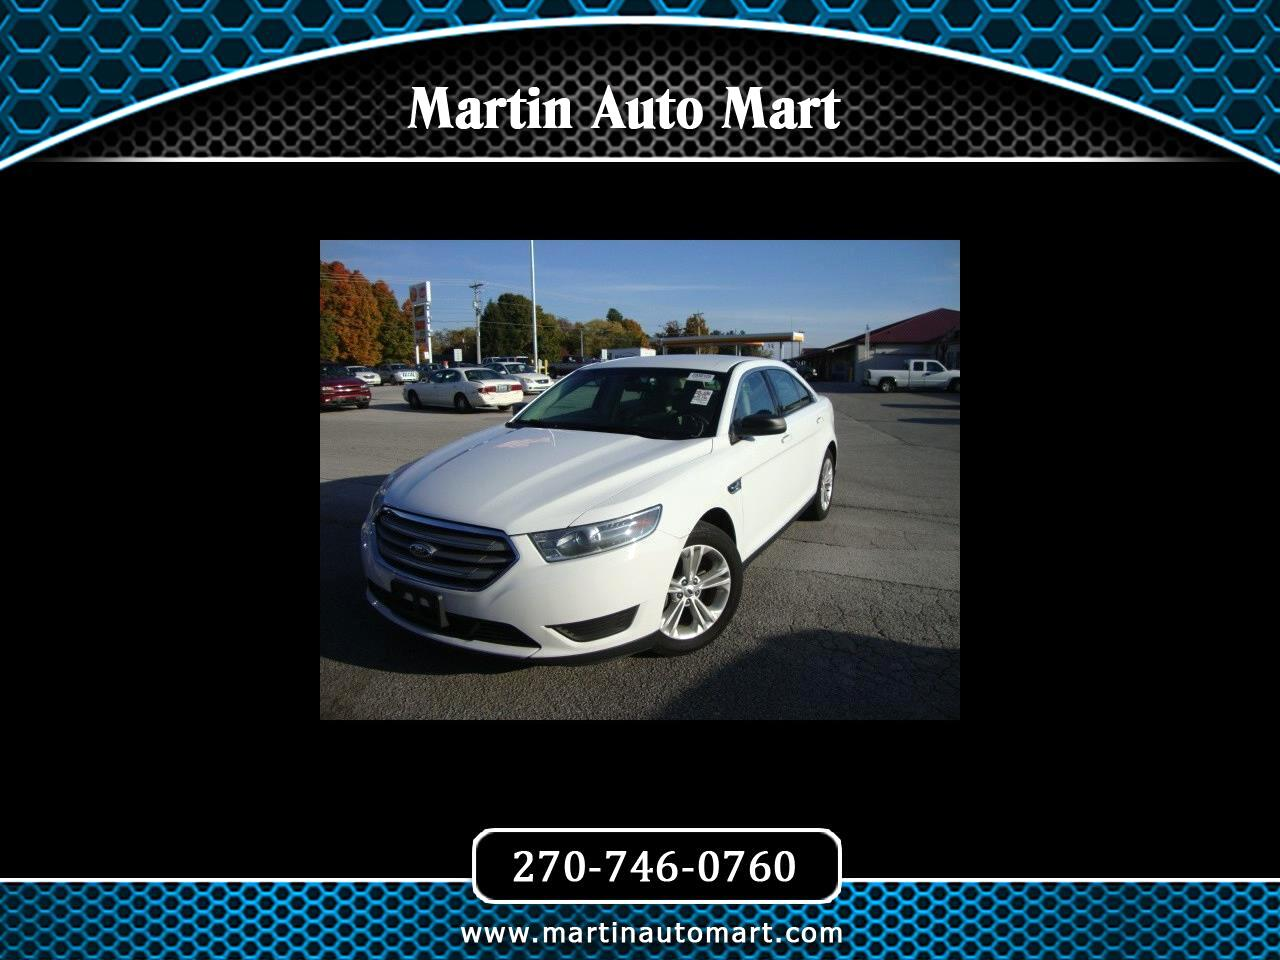 Ford Taurus 4dr Sdn SE FWD 2015